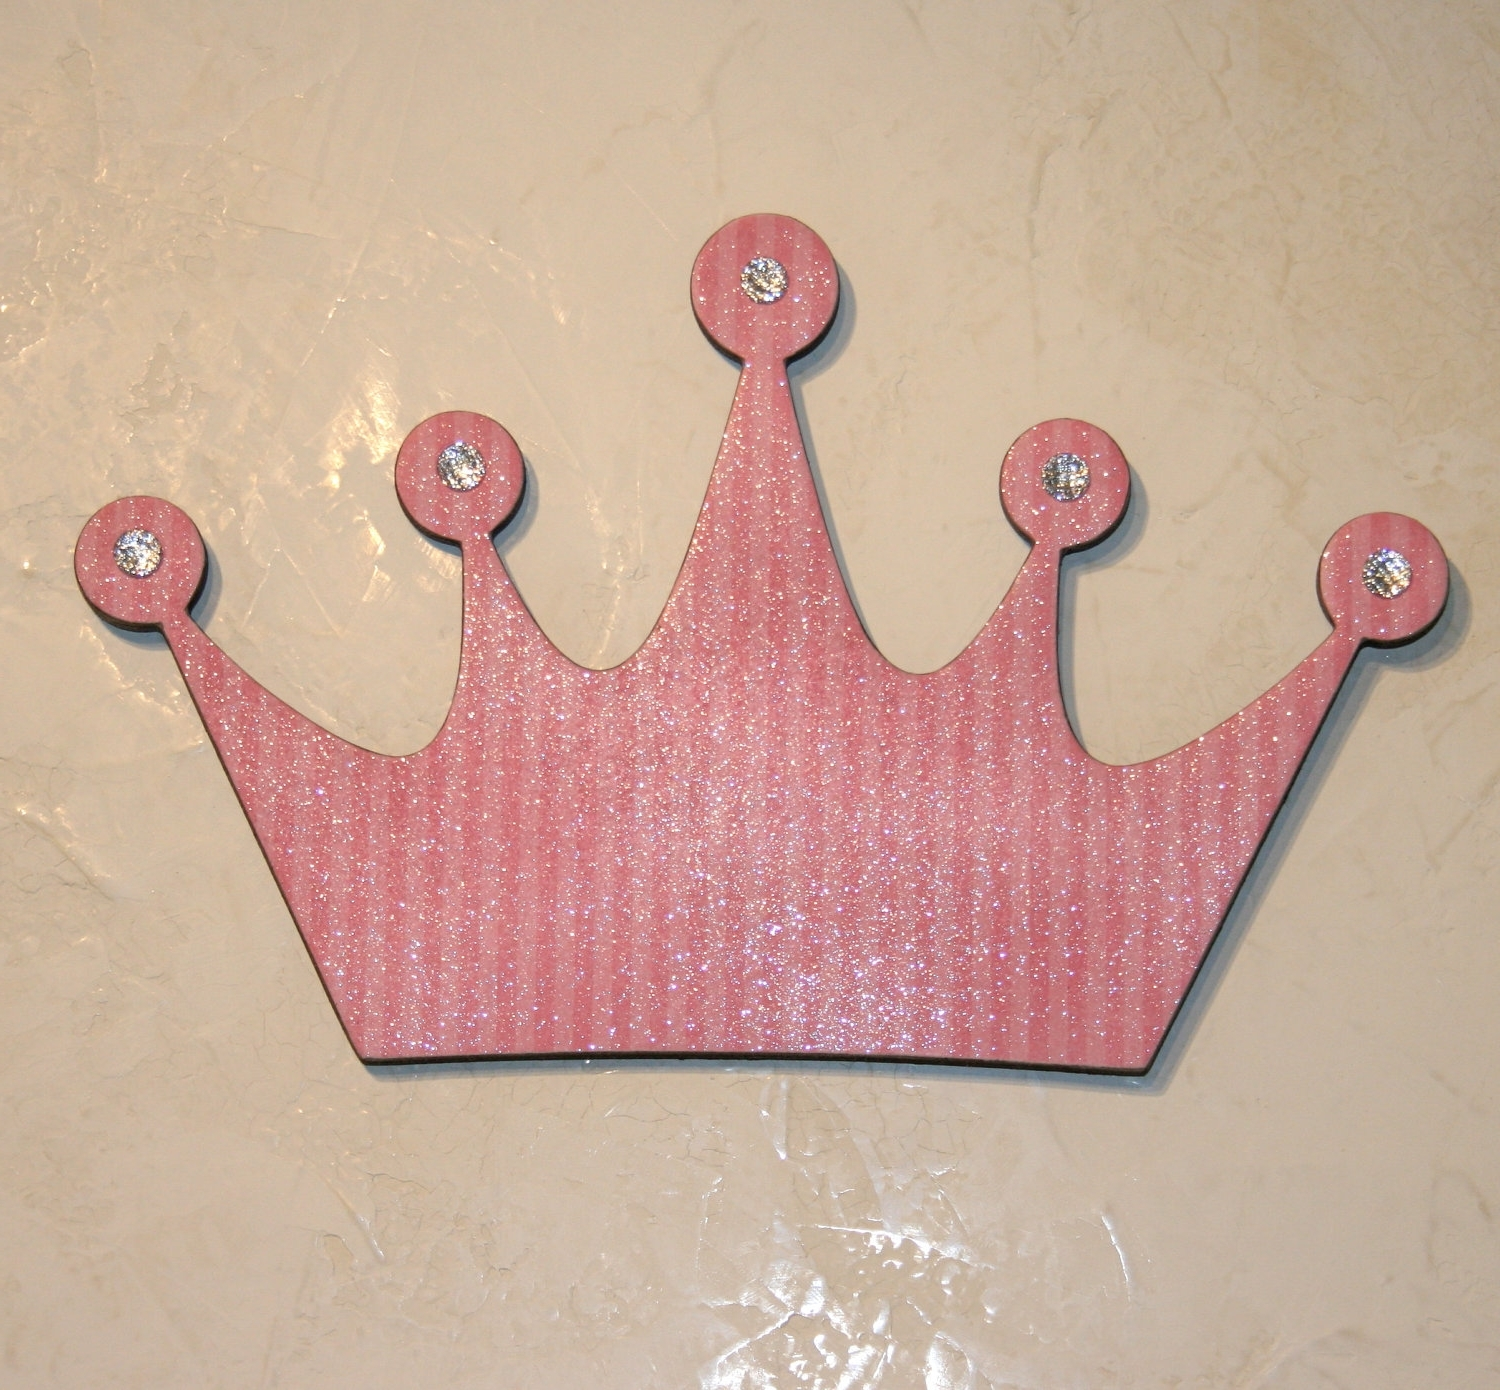 Most Recent Princess Crown Wall Art With Regard To Grand Diy Wall Decor Projects That Will Amaze You To Lovely Image (View 5 of 15)